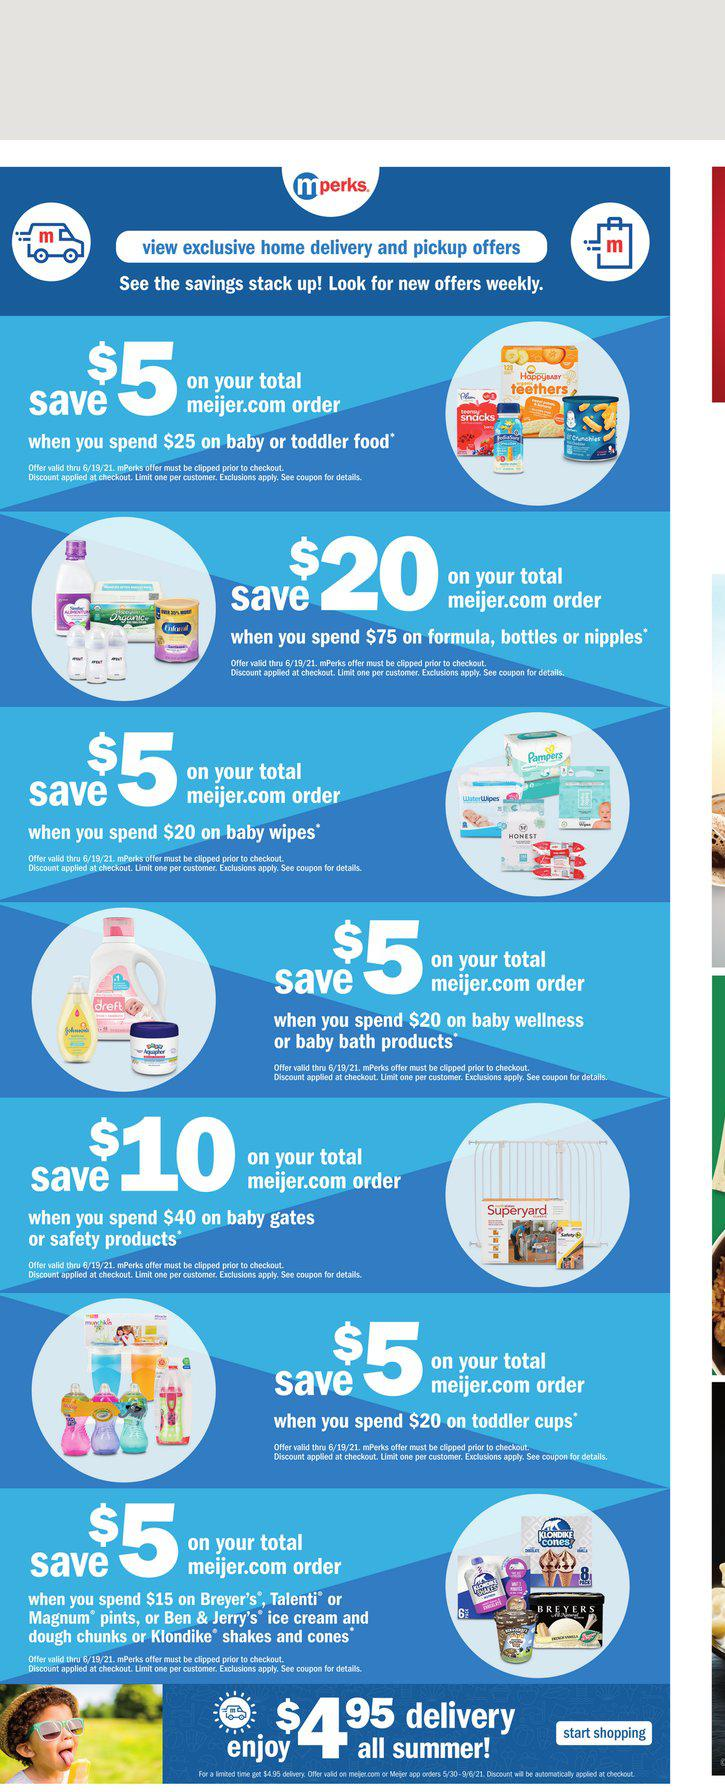 06.06.2021 Meijer ad 10. page